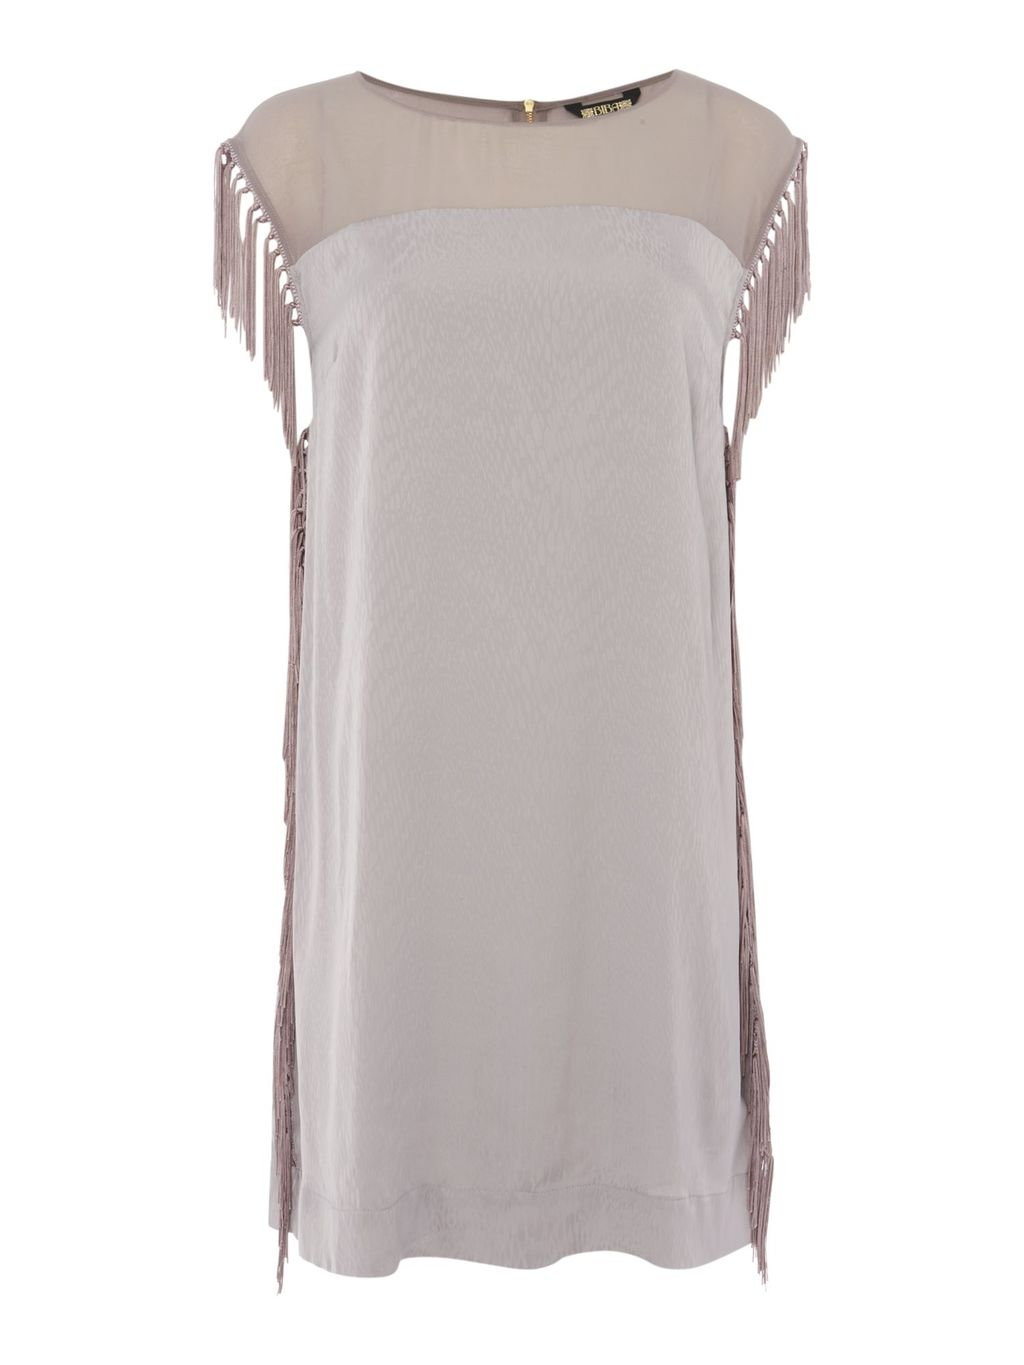 Tassel Side Detail Textured Dress, Light Grey - style: tunic; length: mid thigh; sleeve style: capped; pattern: plain; predominant colour: silver; occasions: evening; fit: body skimming; fibres: polyester/polyamide - 100%; neckline: crew; sleeve length: sleeveless; pattern type: fabric; texture group: other - light to midweight; embellishment: fringing; season: a/w 2016; wardrobe: event; embellishment location: sleeve/cuff